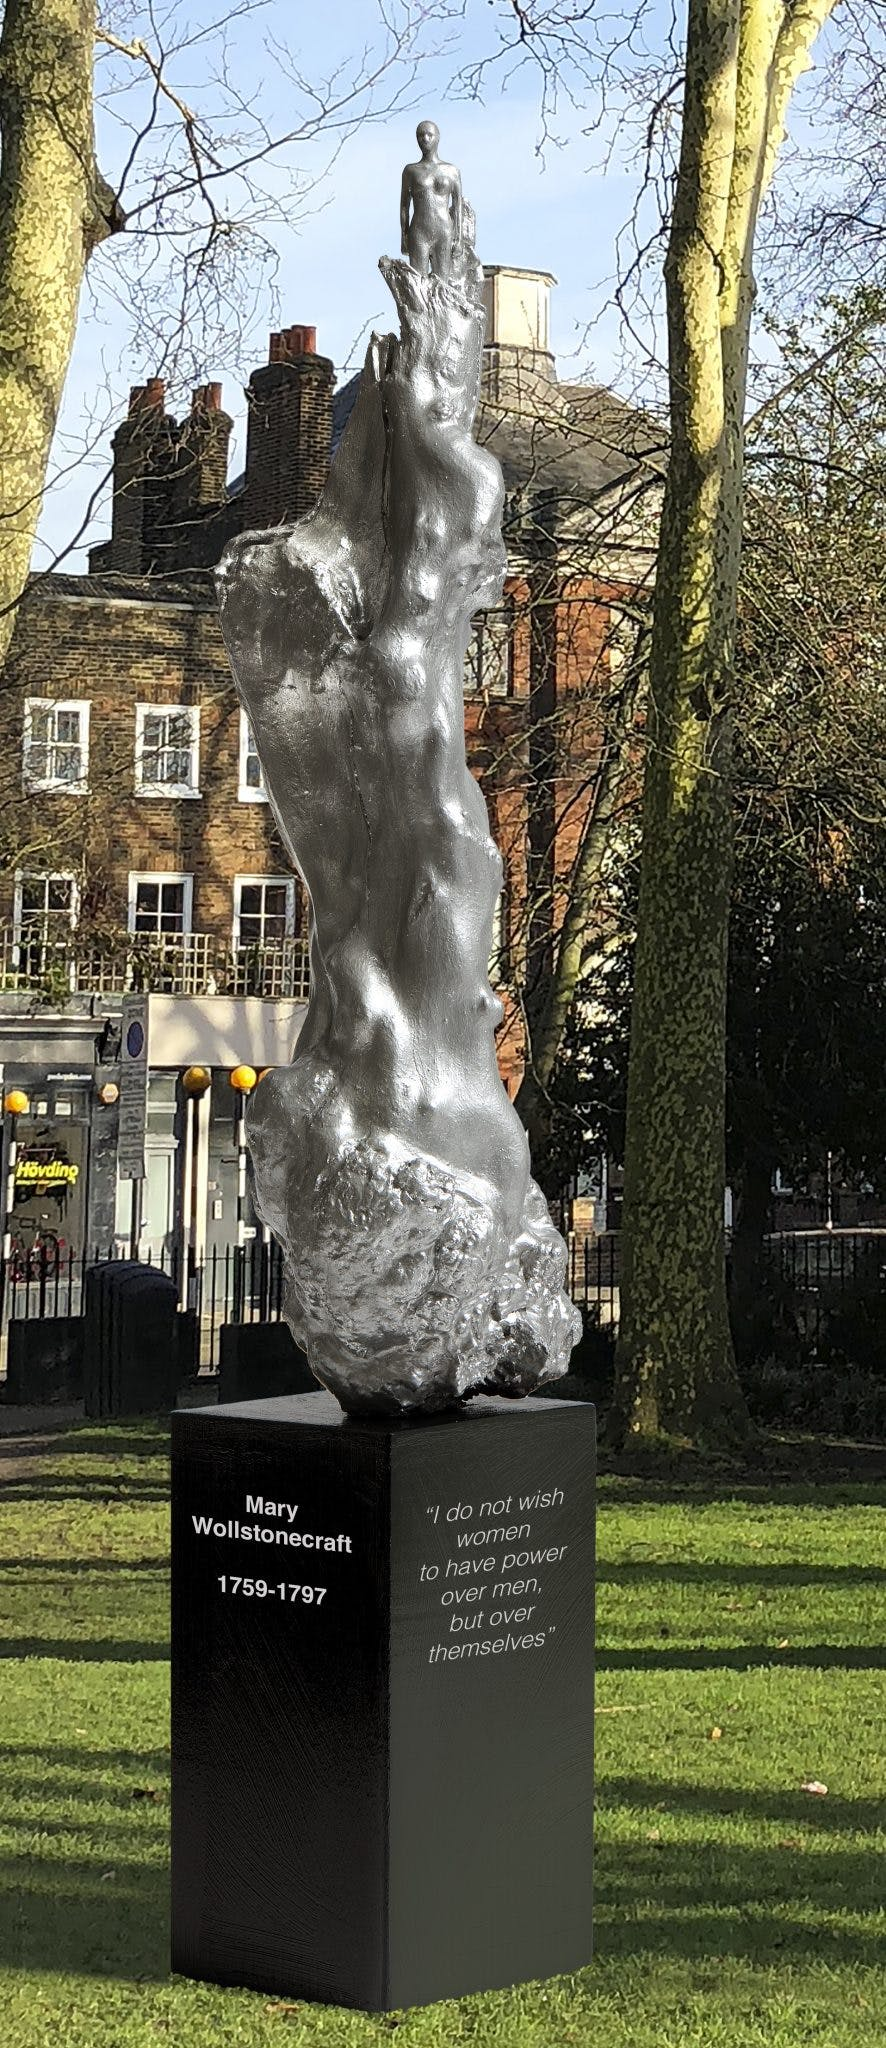 maggi-hambling_photoshop-of-woman-installed-at-site-1-on-newington-green_cropped-23